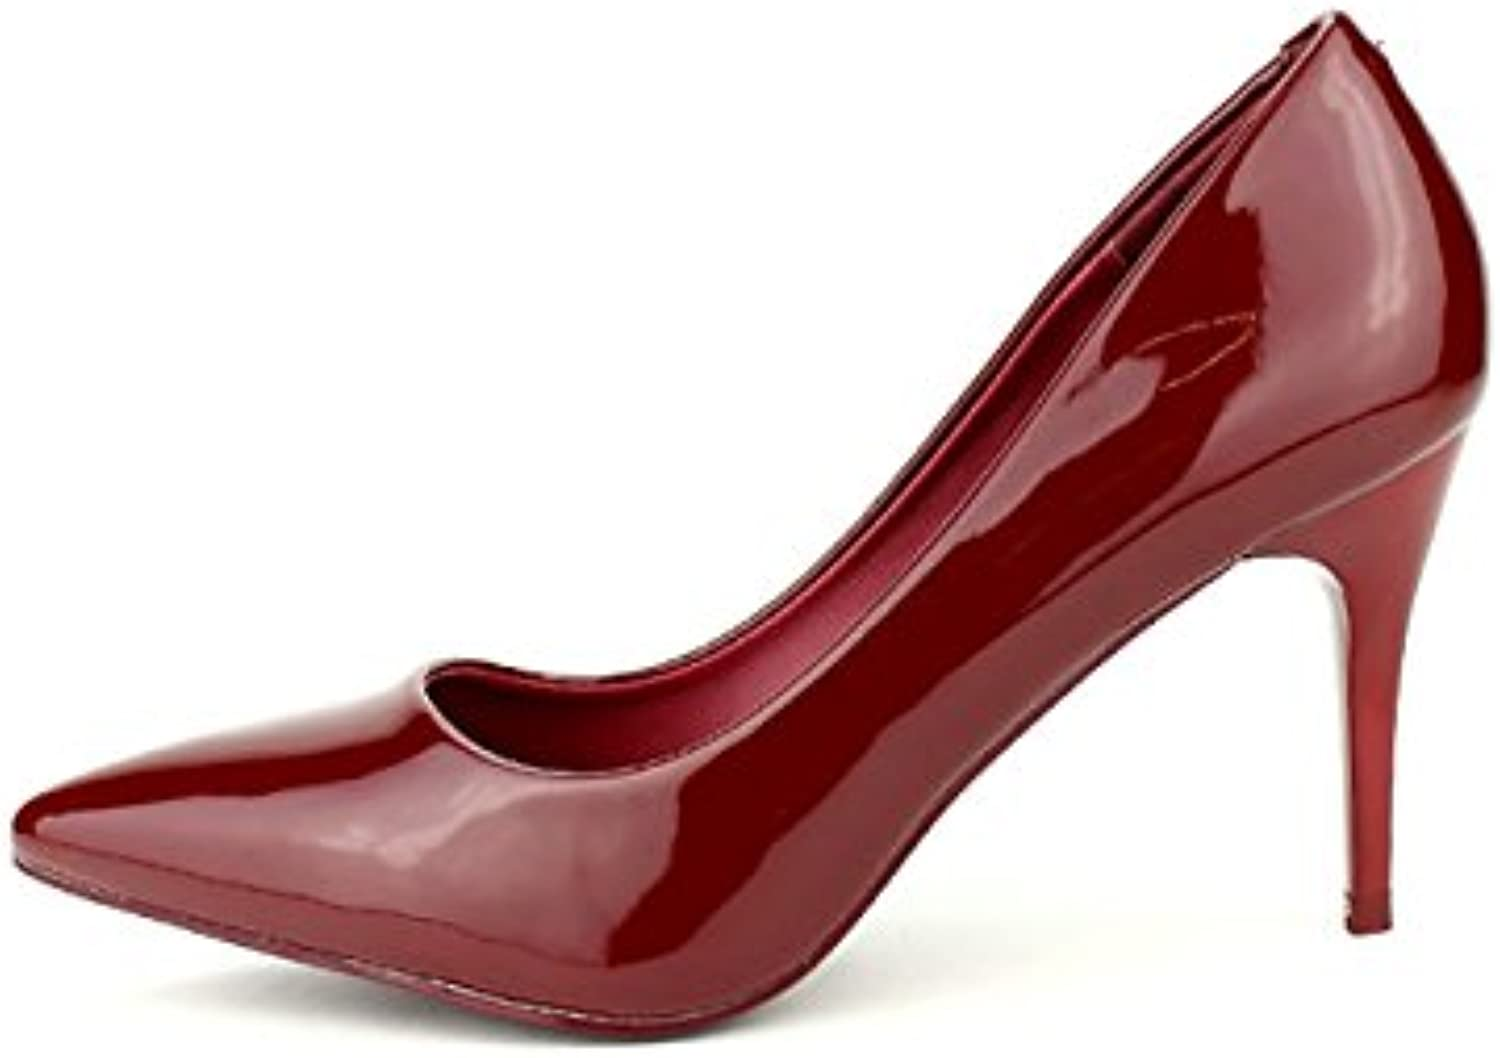 Cendriyon, Escarpin Verni Bordeaux EXQUILY Chaussures FemmeB07DHC8123Parent FemmeB07DHC8123Parent FemmeB07DHC8123Parent ca0e01